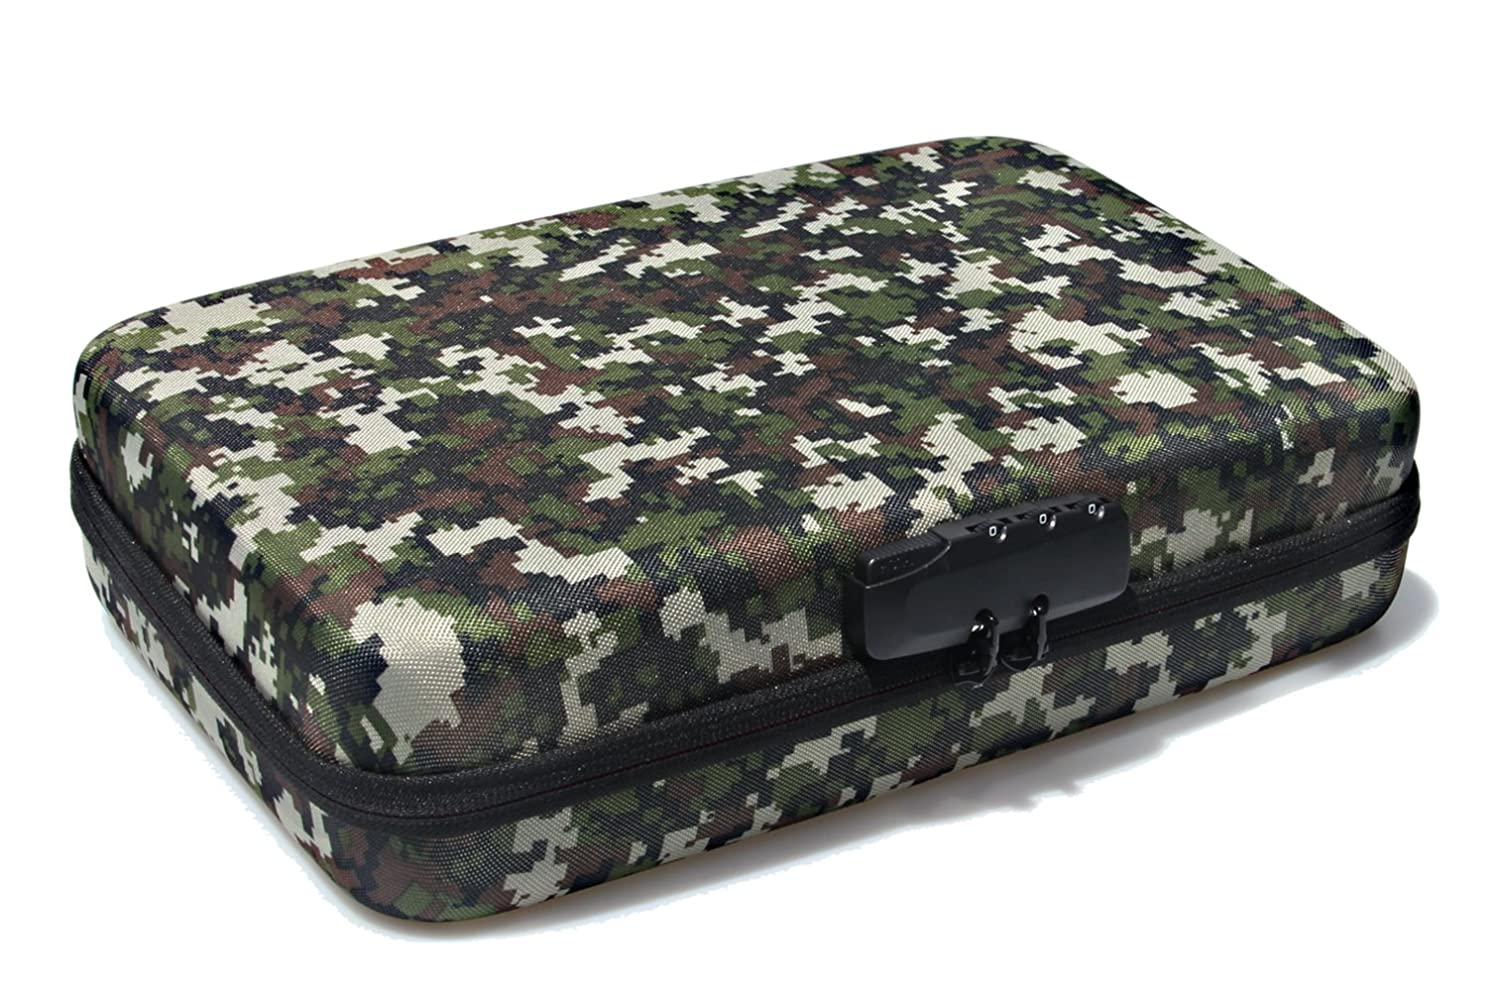 SHBC 4 Foams Free Choice Pistol Case with Password Lockable- Fits Full Size Handgun & Revolvers Waterproof Green Camouflage Bag with Handle Fits Most Glock, Smith and Wesson (S&W), Ruger, Colt,etc. beyond case inc